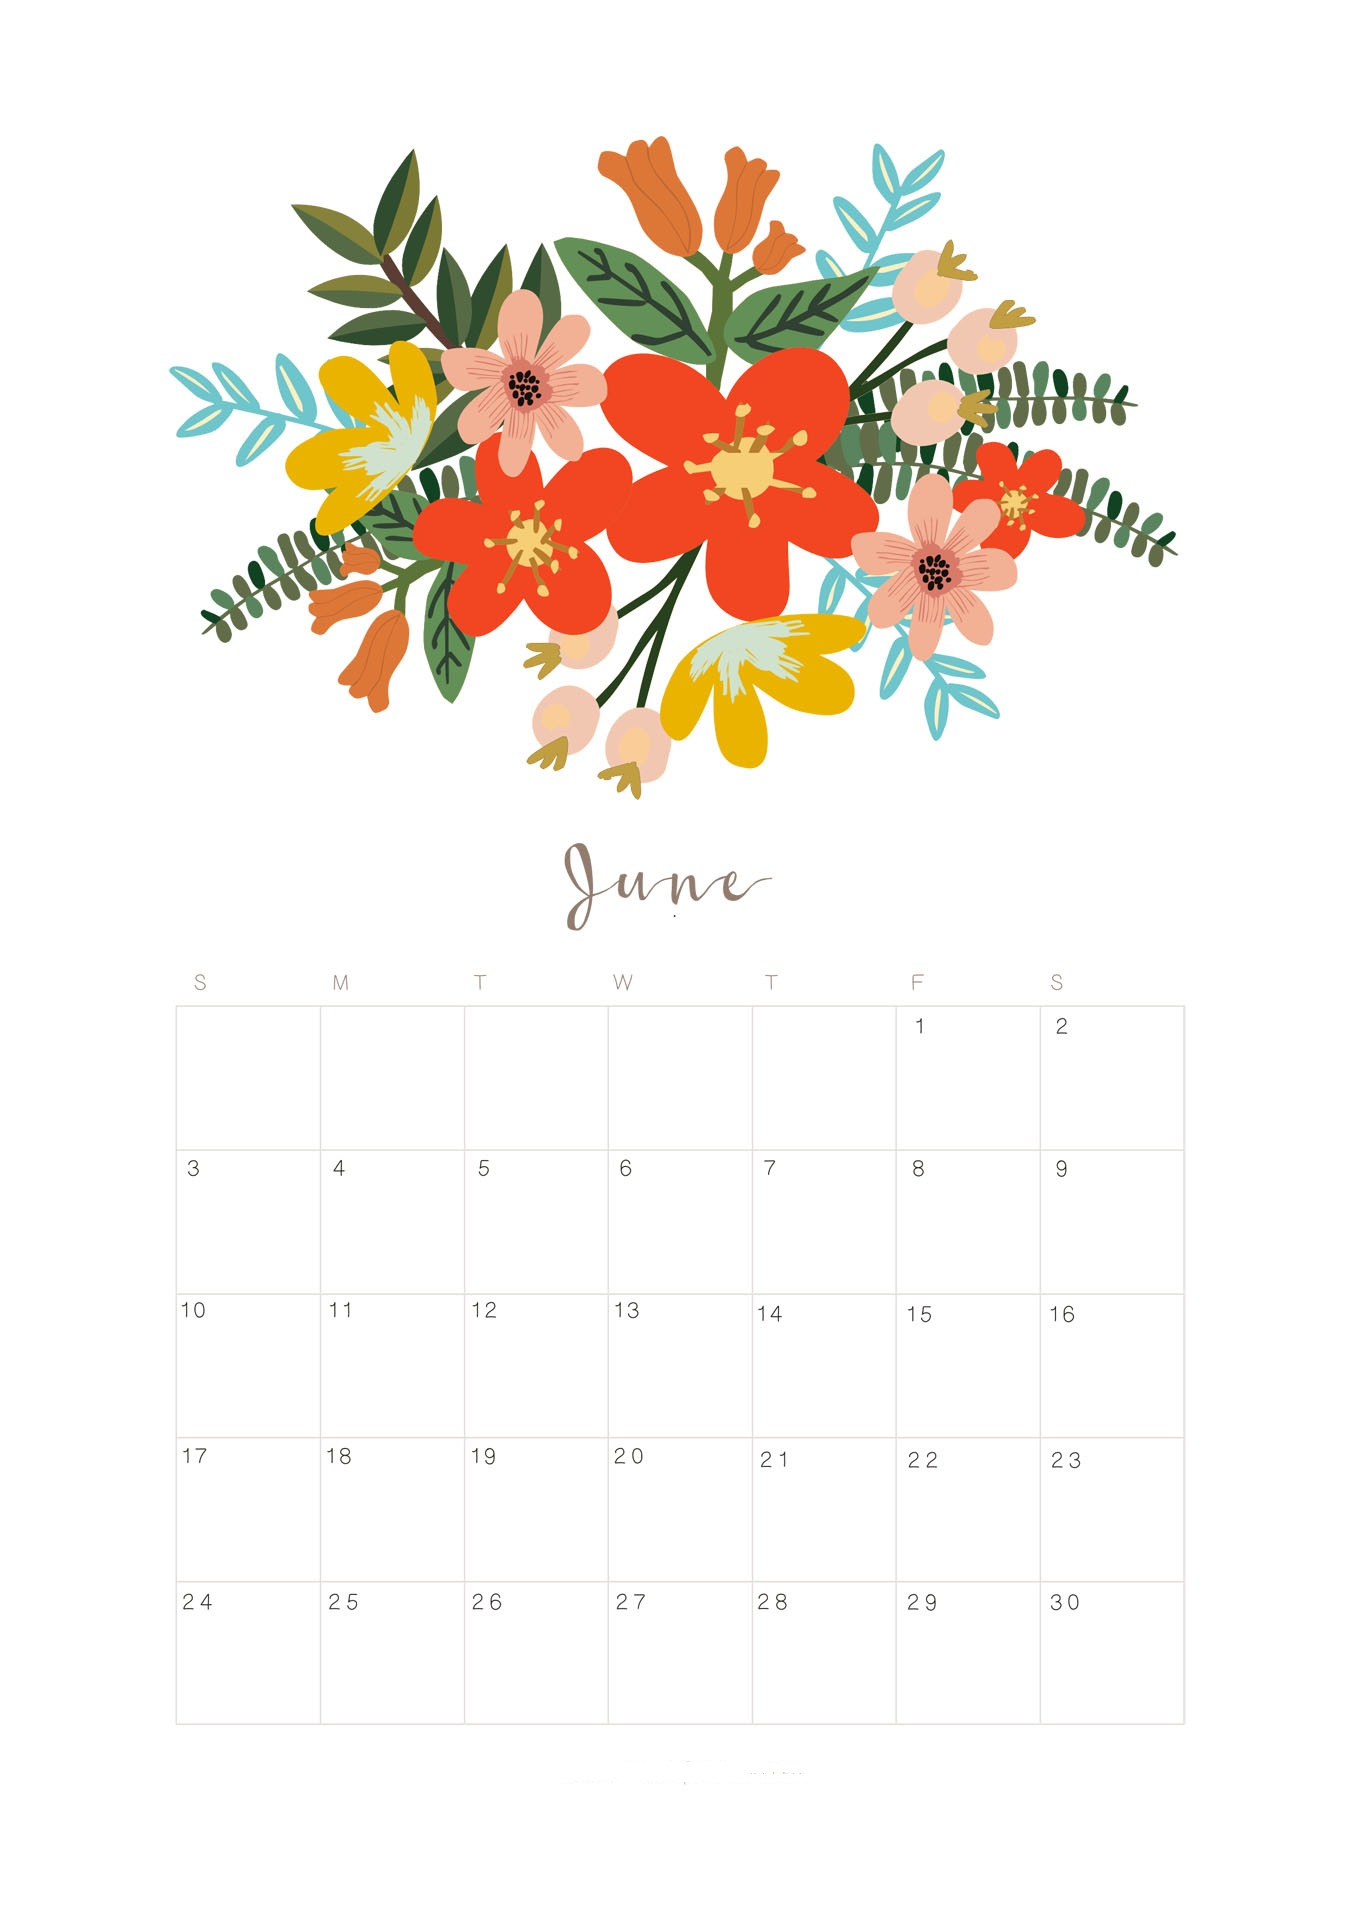 June Chinese Calendar 2018 - Free Printable Templates